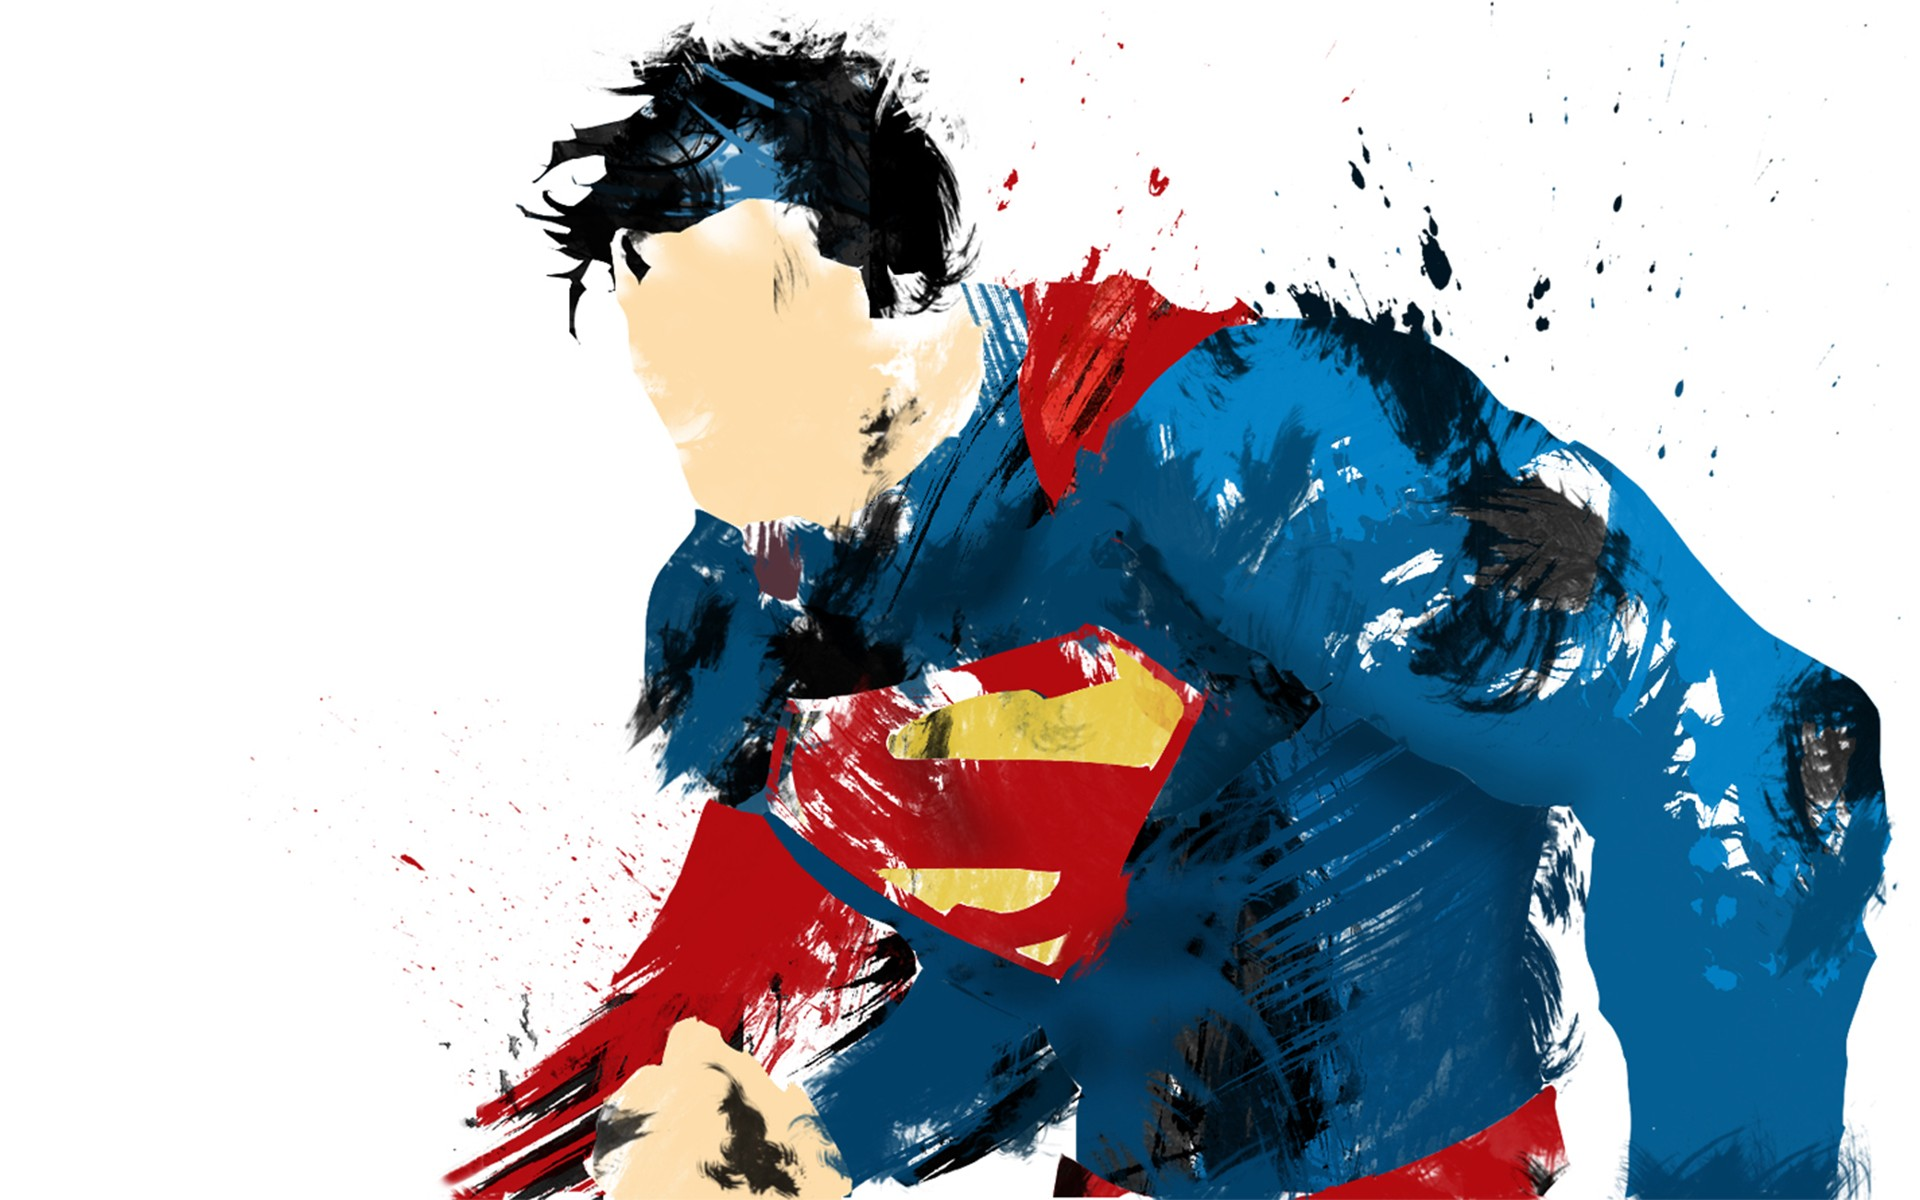 superman wallpapers art digital wallpaper 1920x1200 1920x1200